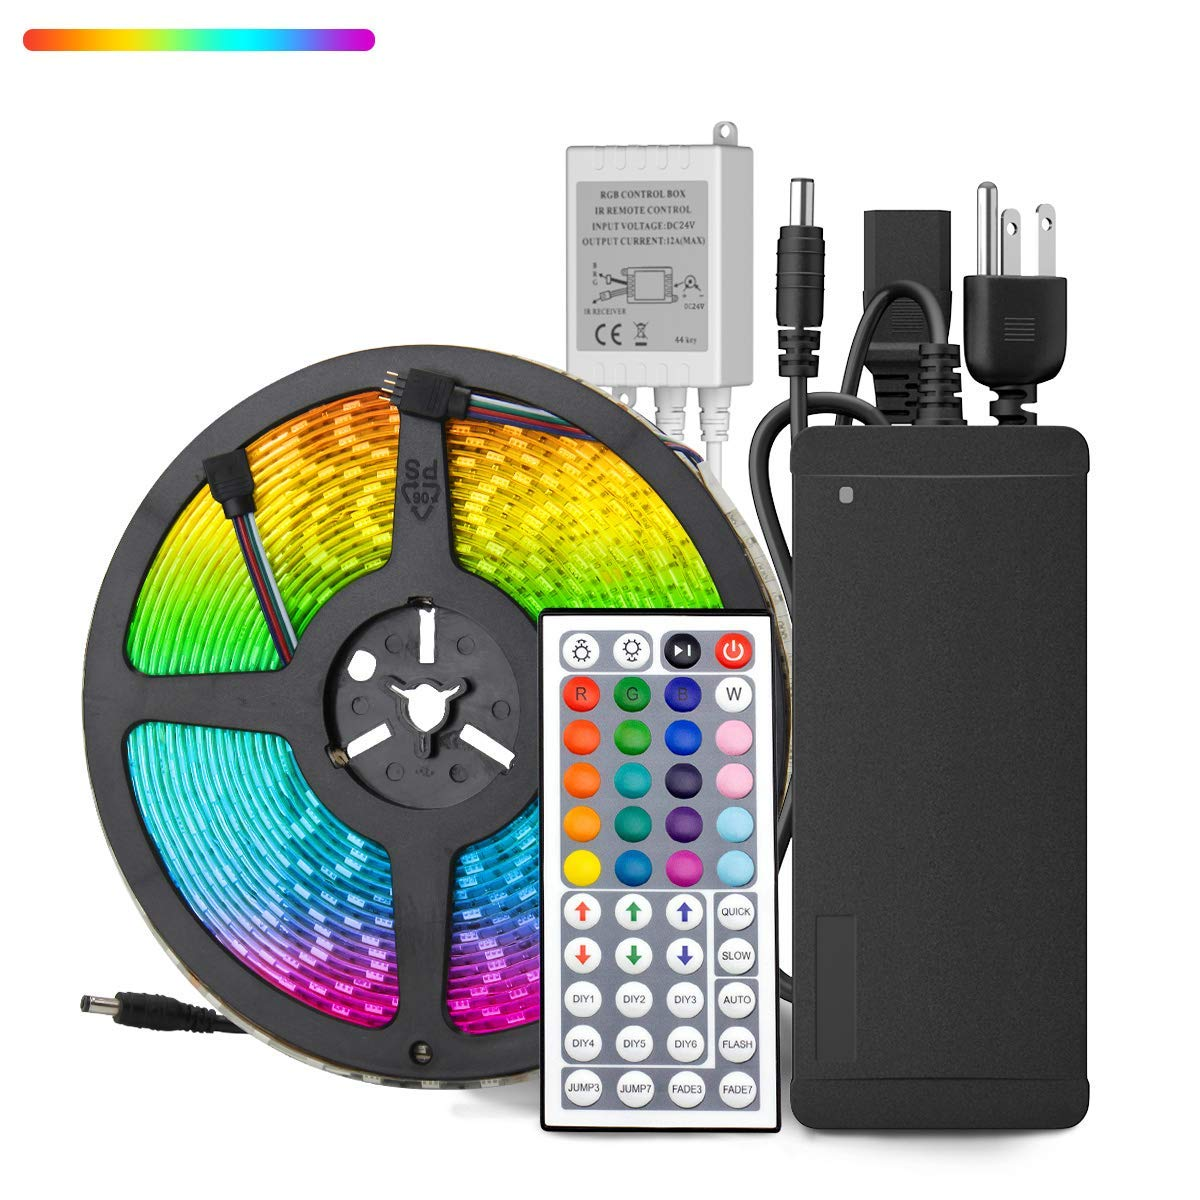 HOMELYLIFE 32.8ft RGB LED Strip Lights Super Bright Waterproof 600 LED SMD 5050 Tape Light Color Changing Full Kit with 44 Keys IR Remote Control+24V Power Supply LED Lighting for Party Kitchen Indoor by HOMELYLIFE (Image #1)